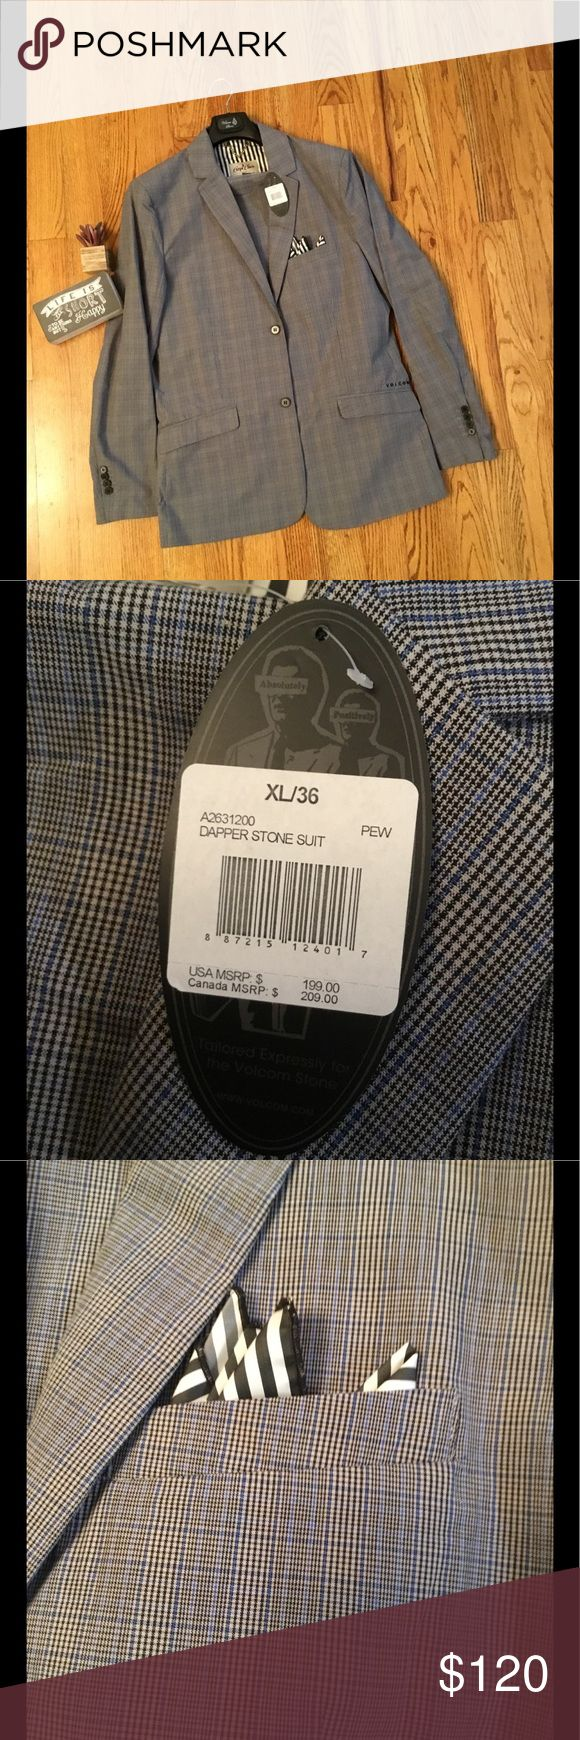 NWT!!! VOLCOM SUIT NWT Volcom Suit. Grey plaid type pattern. Includes black and white stripe pocket square. Great details! Volcom Suits & Blazers Suits